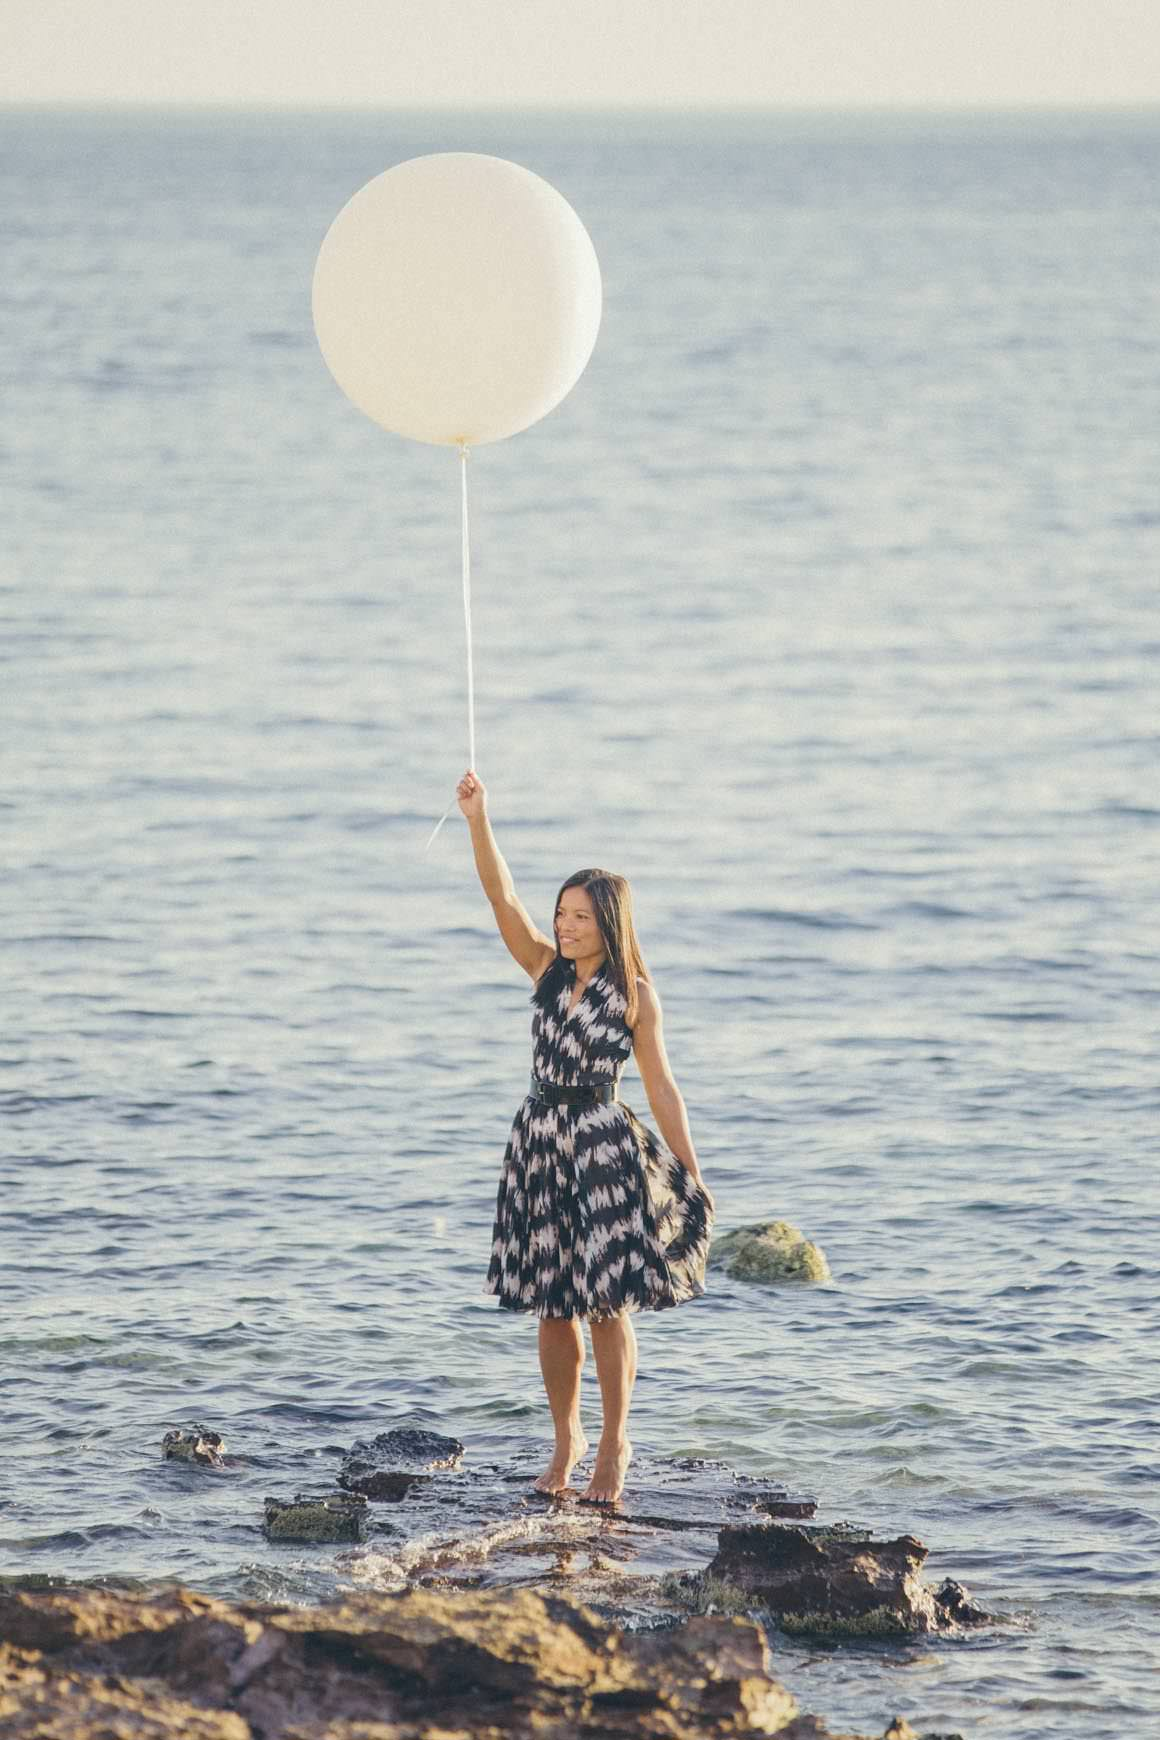 baloon at the beach - girl holding big balloon at the beach - photo prop